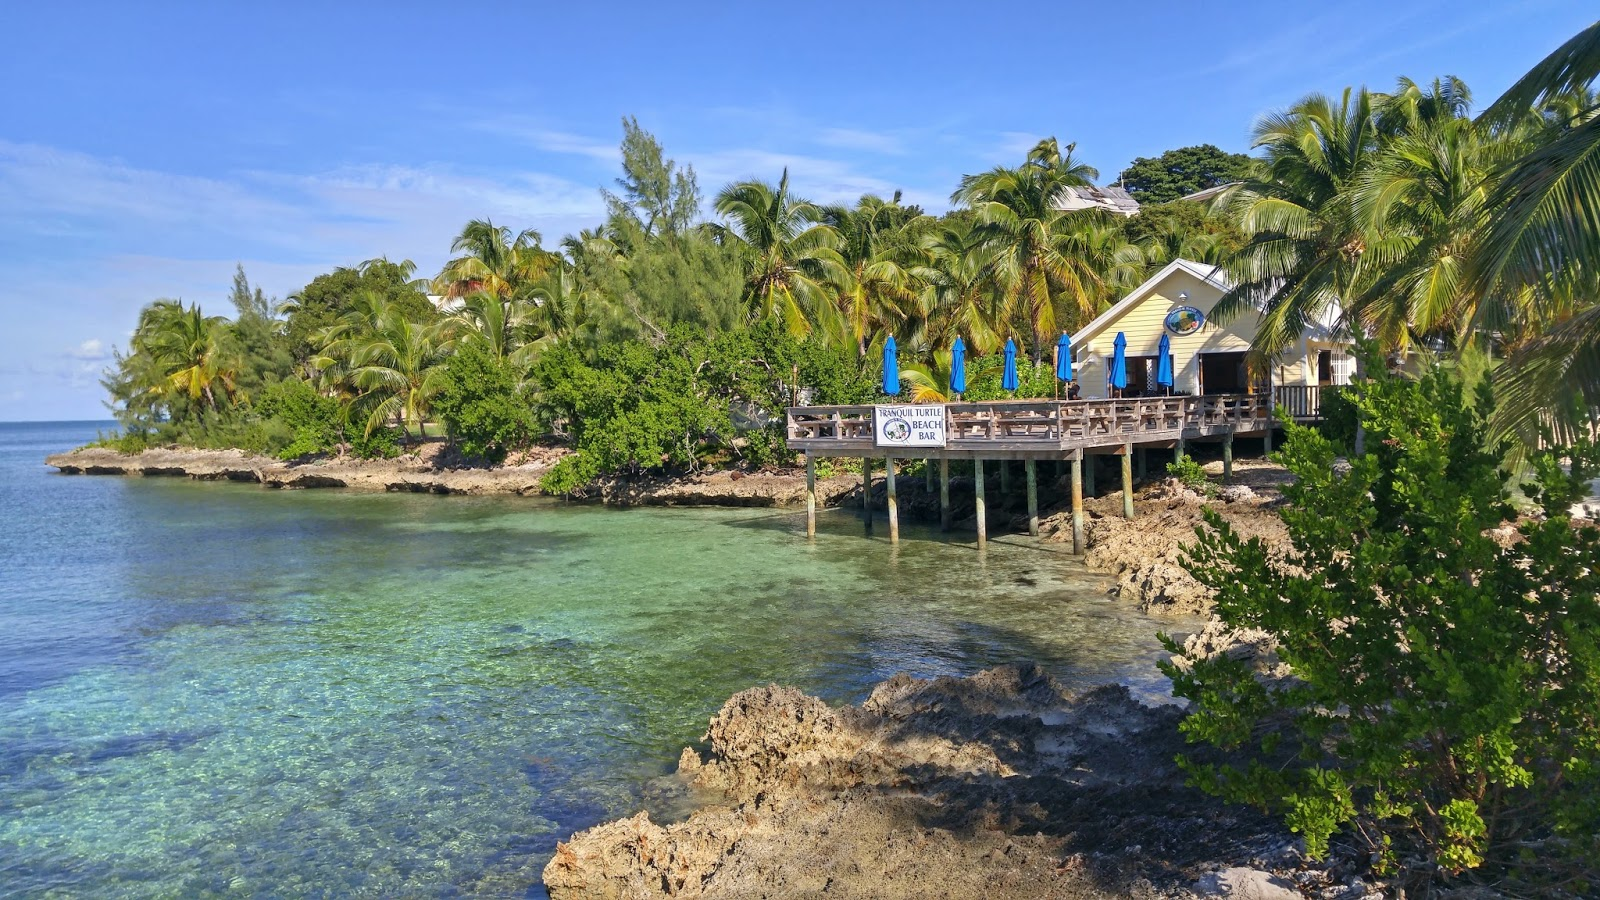 House rentals green turtle cay - The Bluff House Green Turtle Cay Bahamas